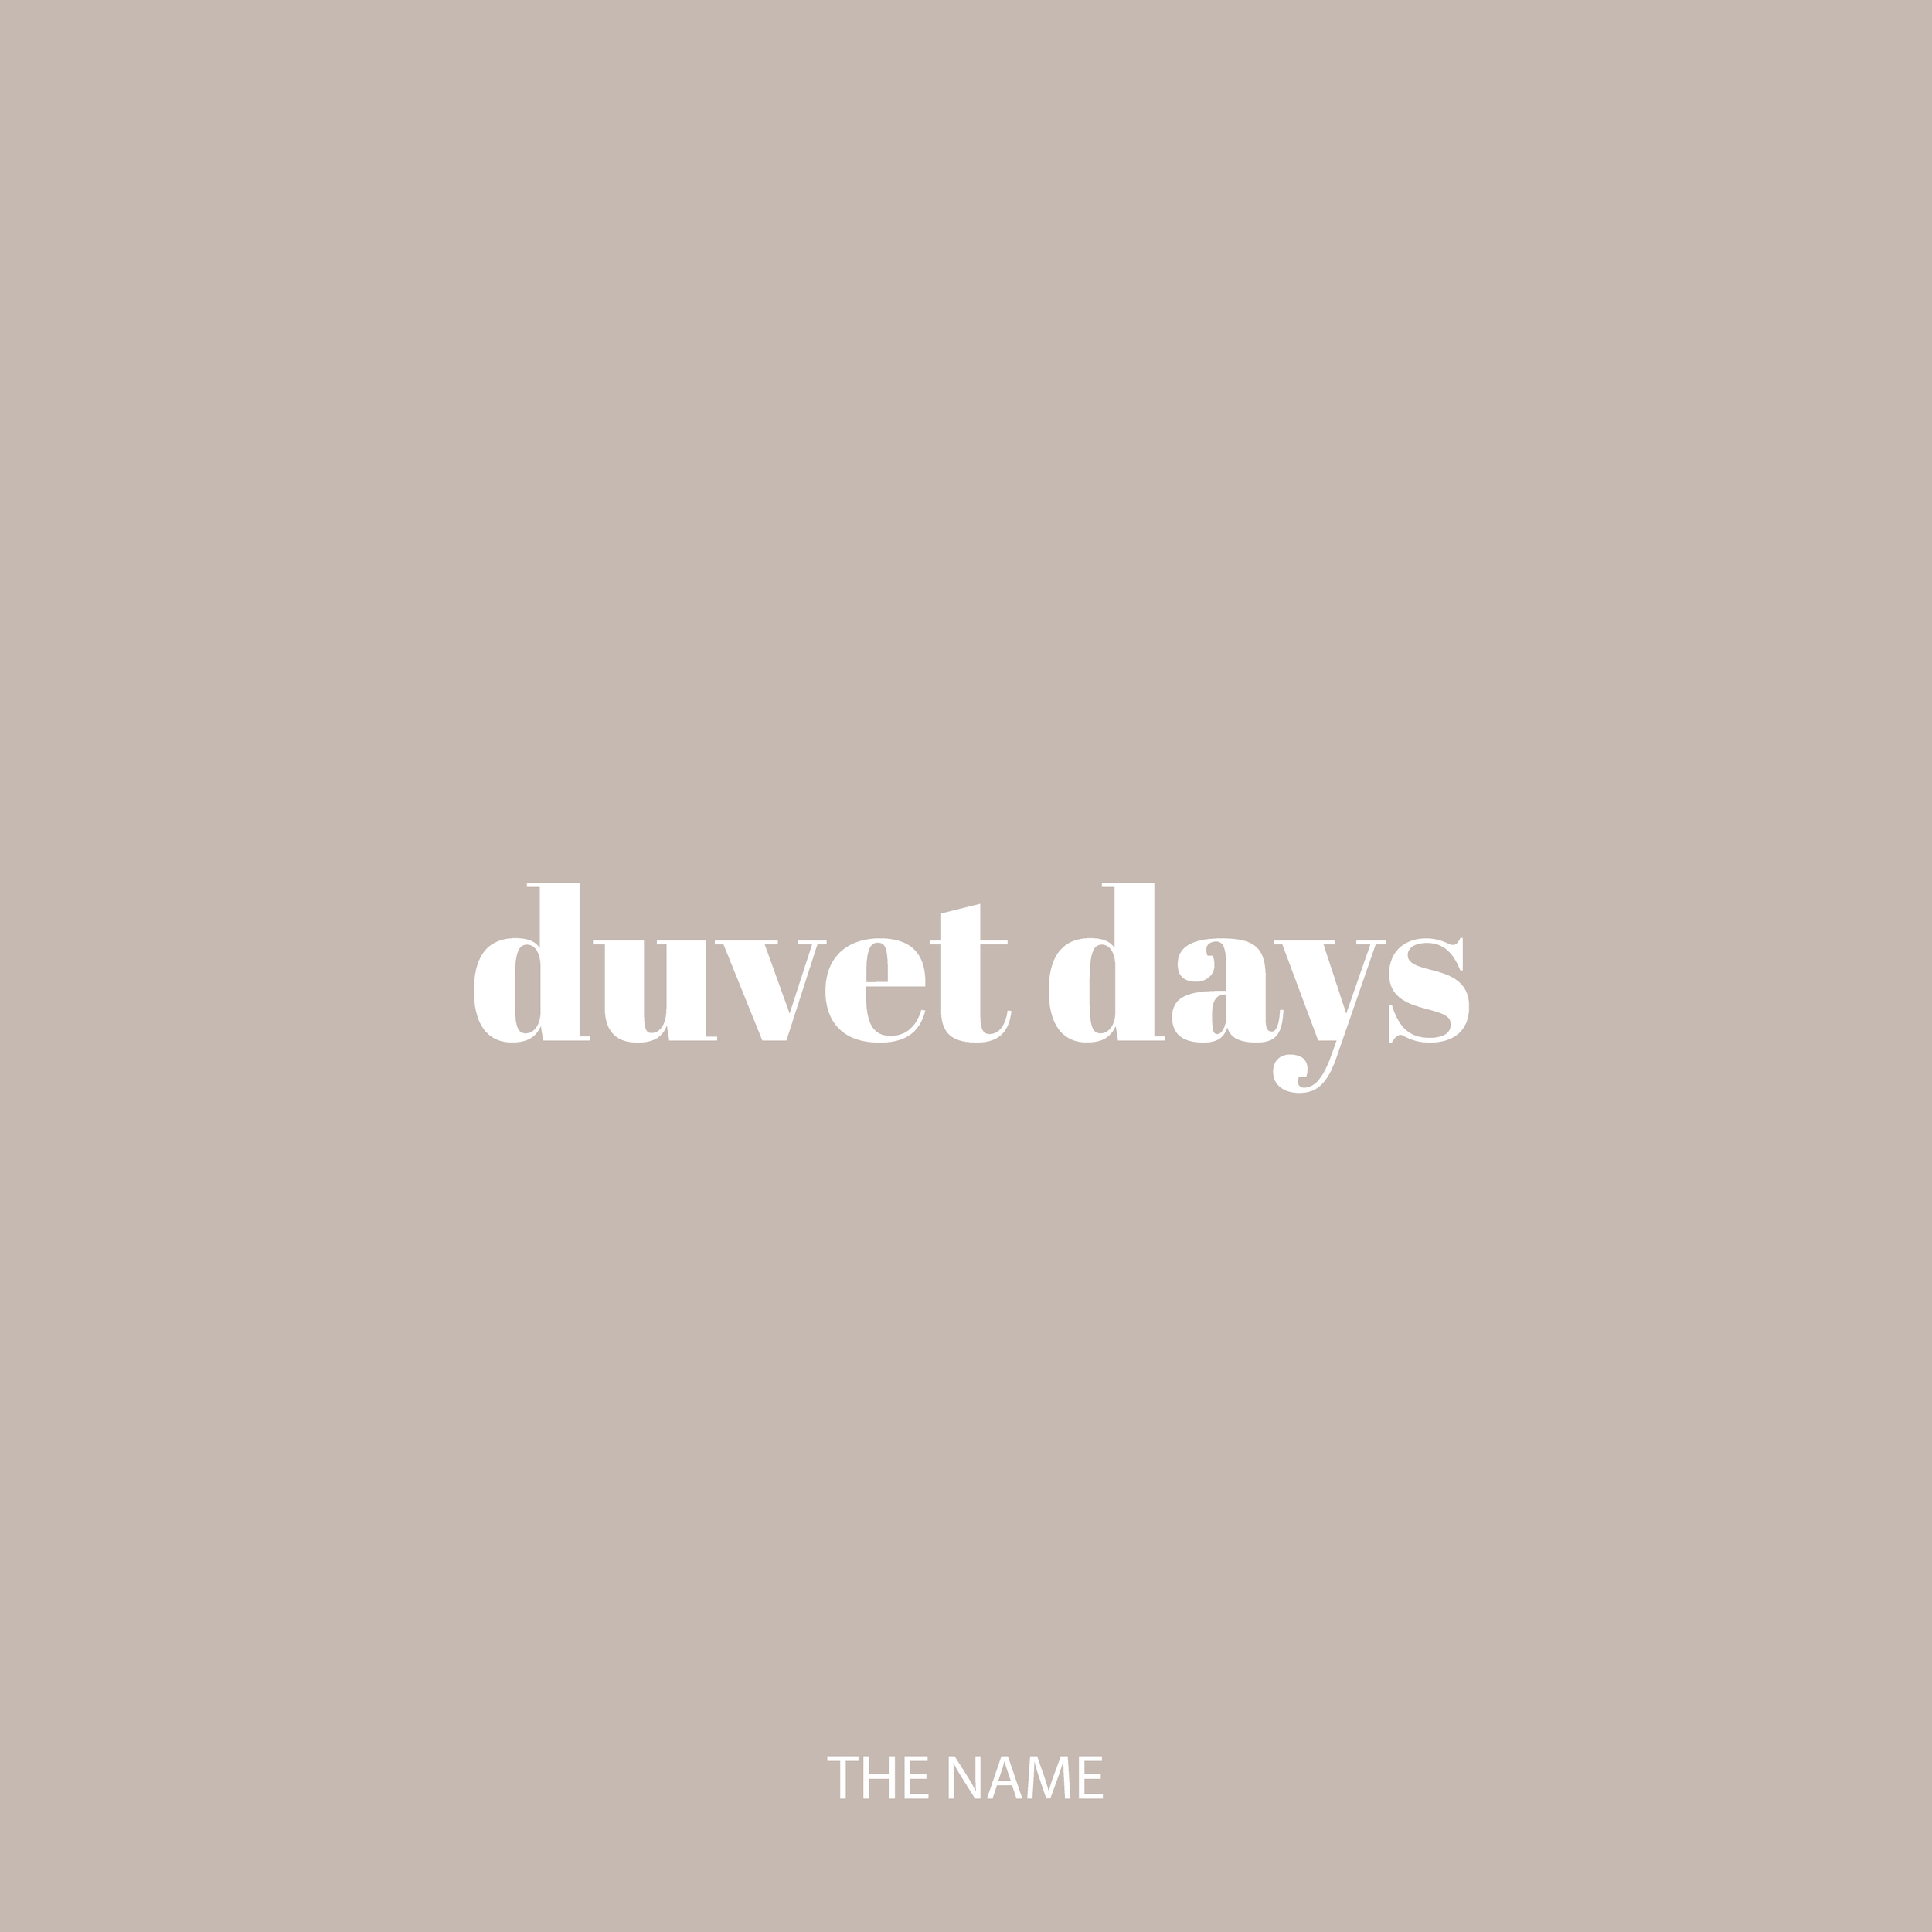 "A Duvet Day is a day off for personal well being. It's not a day to tend to an emergency, an errand, or even a sick day. It's a ""just because"" day. A day to practice kindness towards yourself, which should be simple, but in actuality, is one of the biggest challenges for survivors. A Duvet Day allows you to overcome all obstacles in self-kindness so you can learn to love yourself again, as well as others."